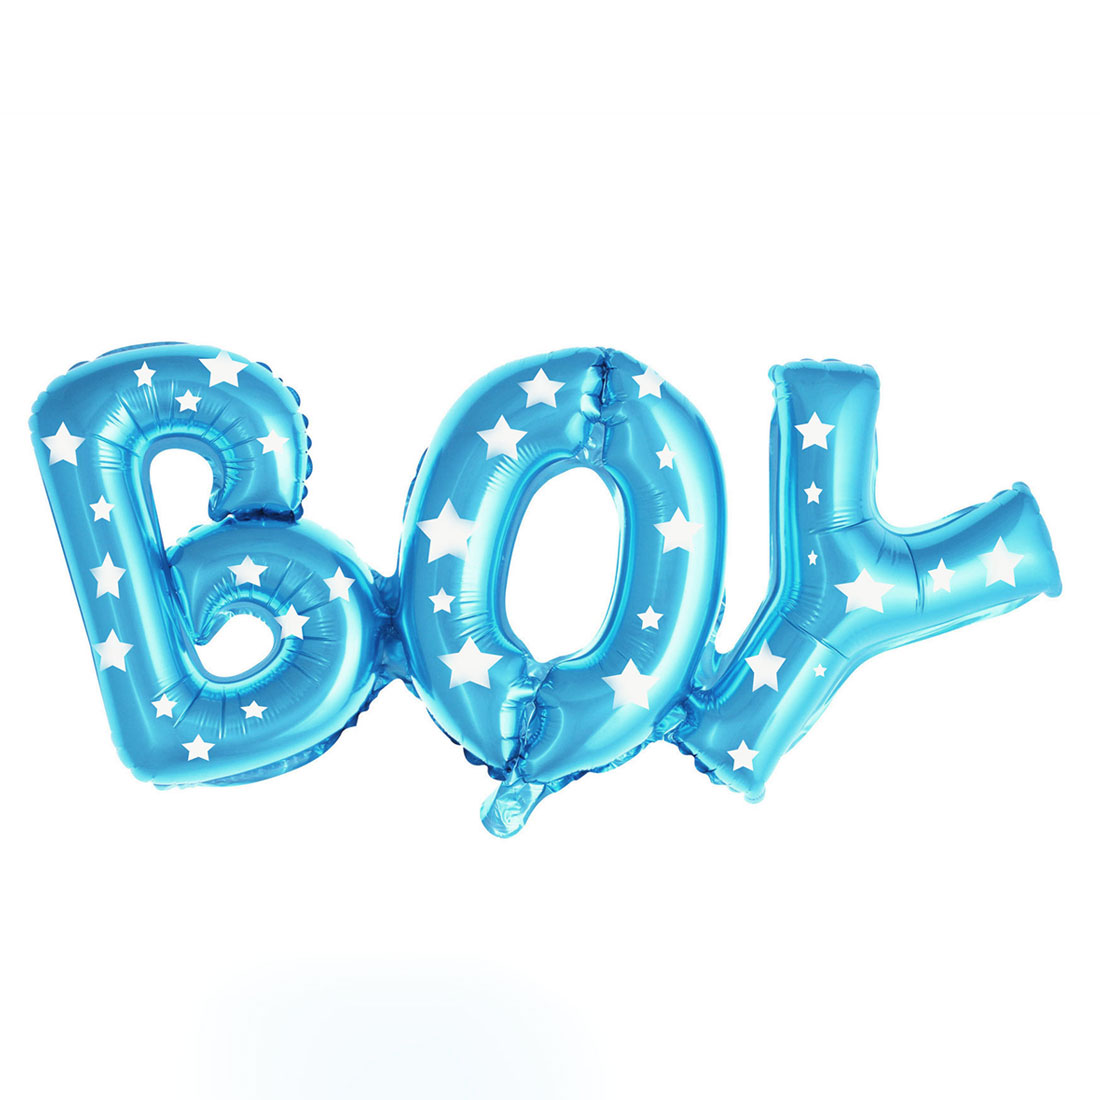 Home Foil Star Print Boy English Letter Shaped Balloon Birthday Party Decor Blue 26 Inch